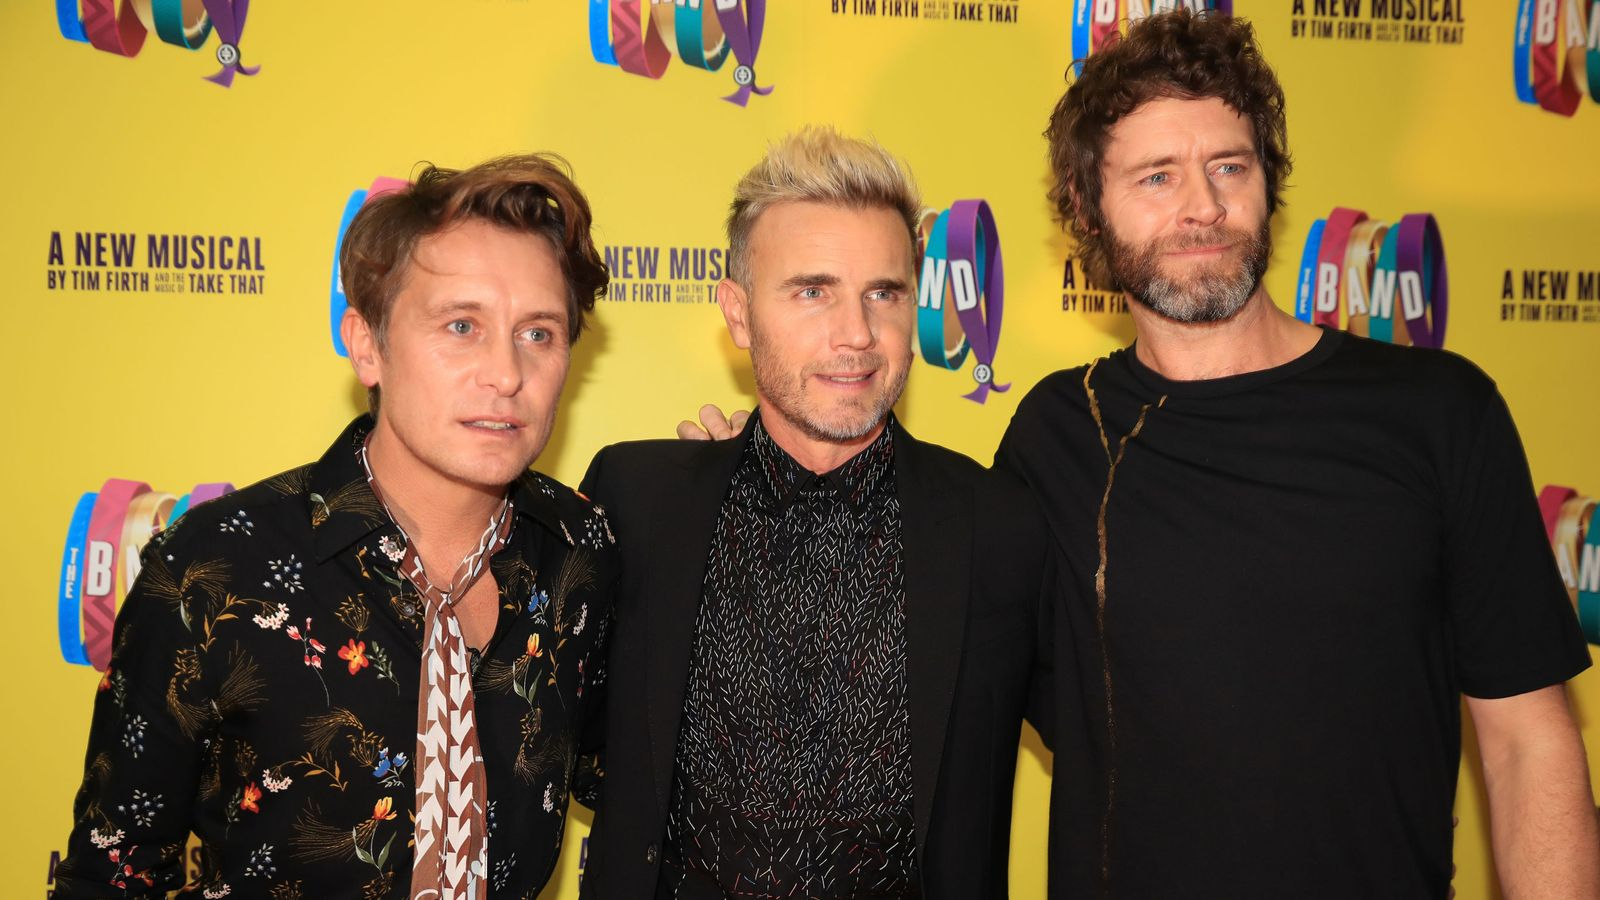 Back For Good: Take That unveil greatest hits tour